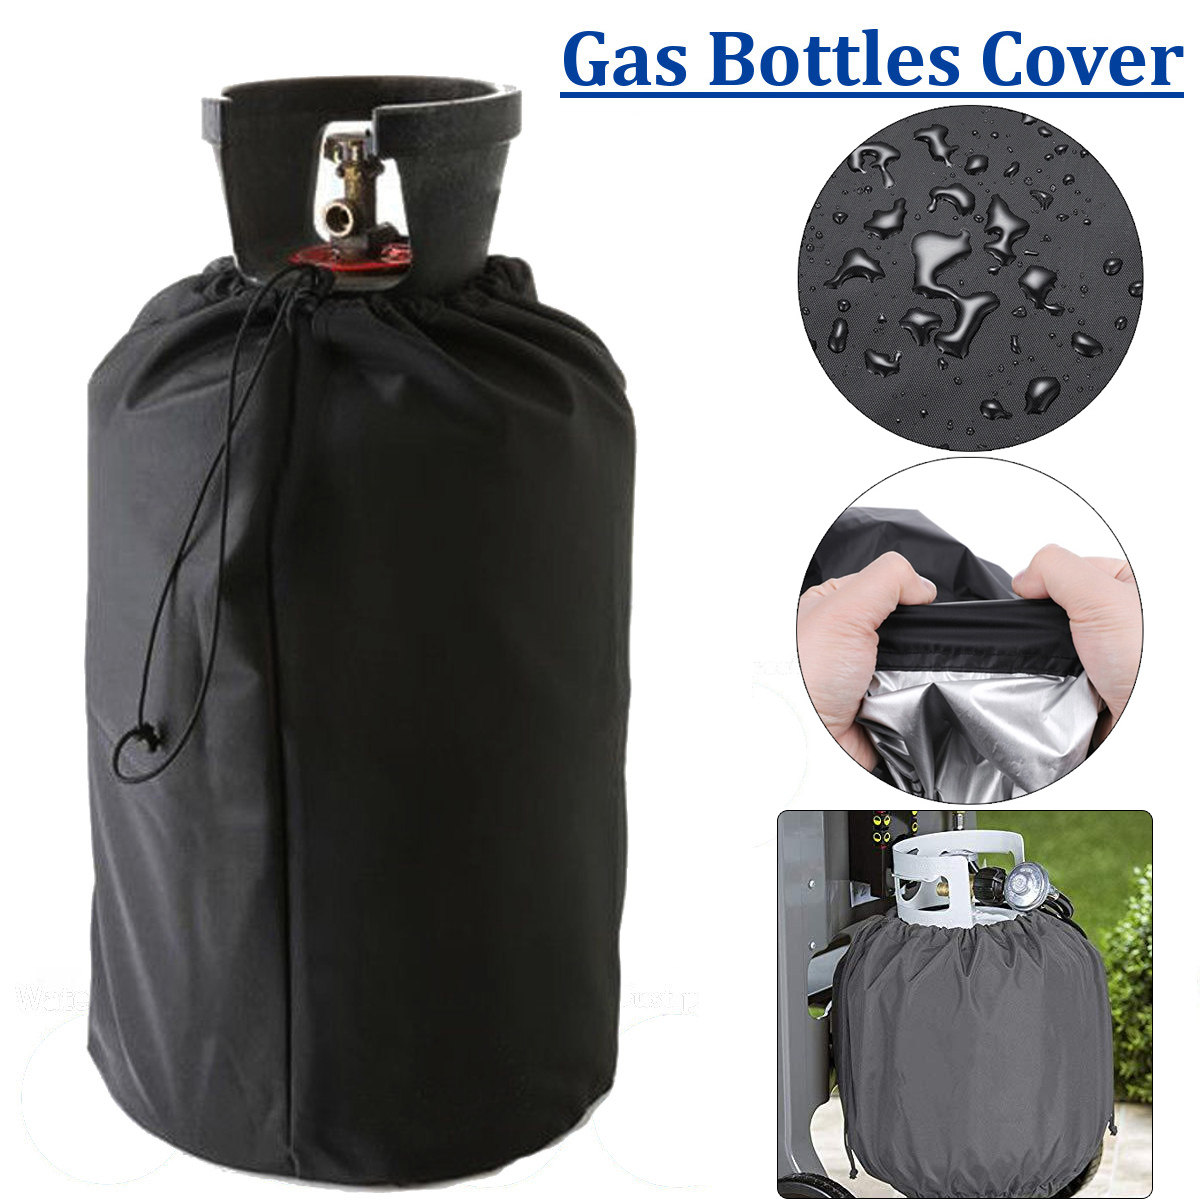 Gas Cylinder Cover Fits 30-Pound Steel Propane Cylinder QEES 30lb Ventilated Propane Tank Cover Heavy Duty Oxford Cloth MQGZ01 Waterproof Gas Grill Tank Protector